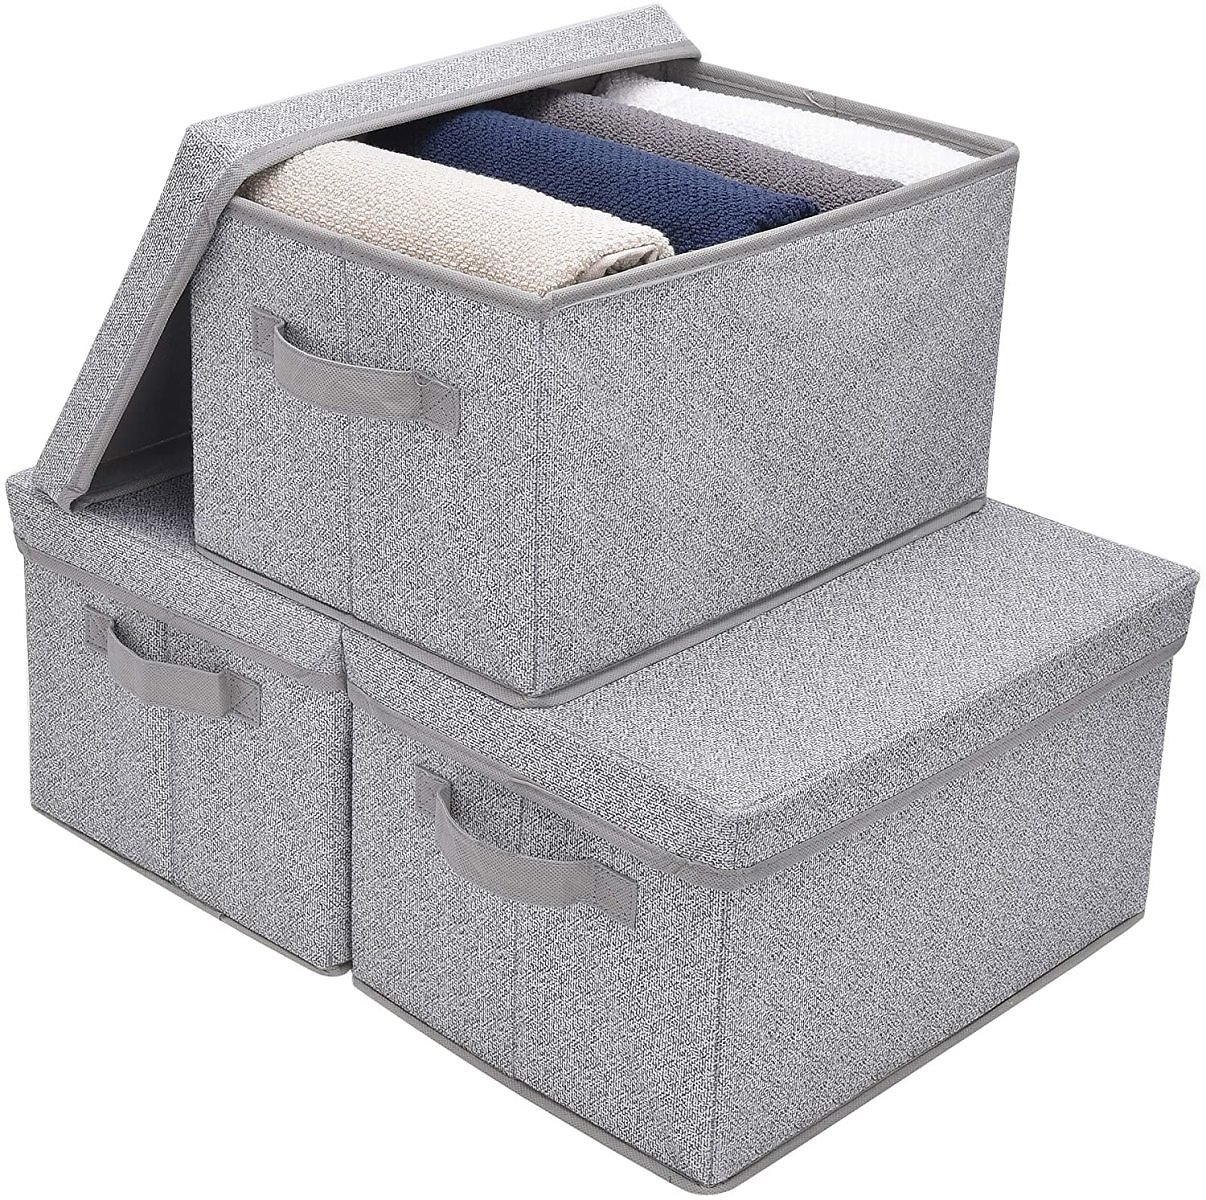 GRANNY SAYS Storage Bins for Closet with Lids and Handles, Rectangle Storage Box, Fabric Storage Baskets Containers, Gray, Large, 3-Pack